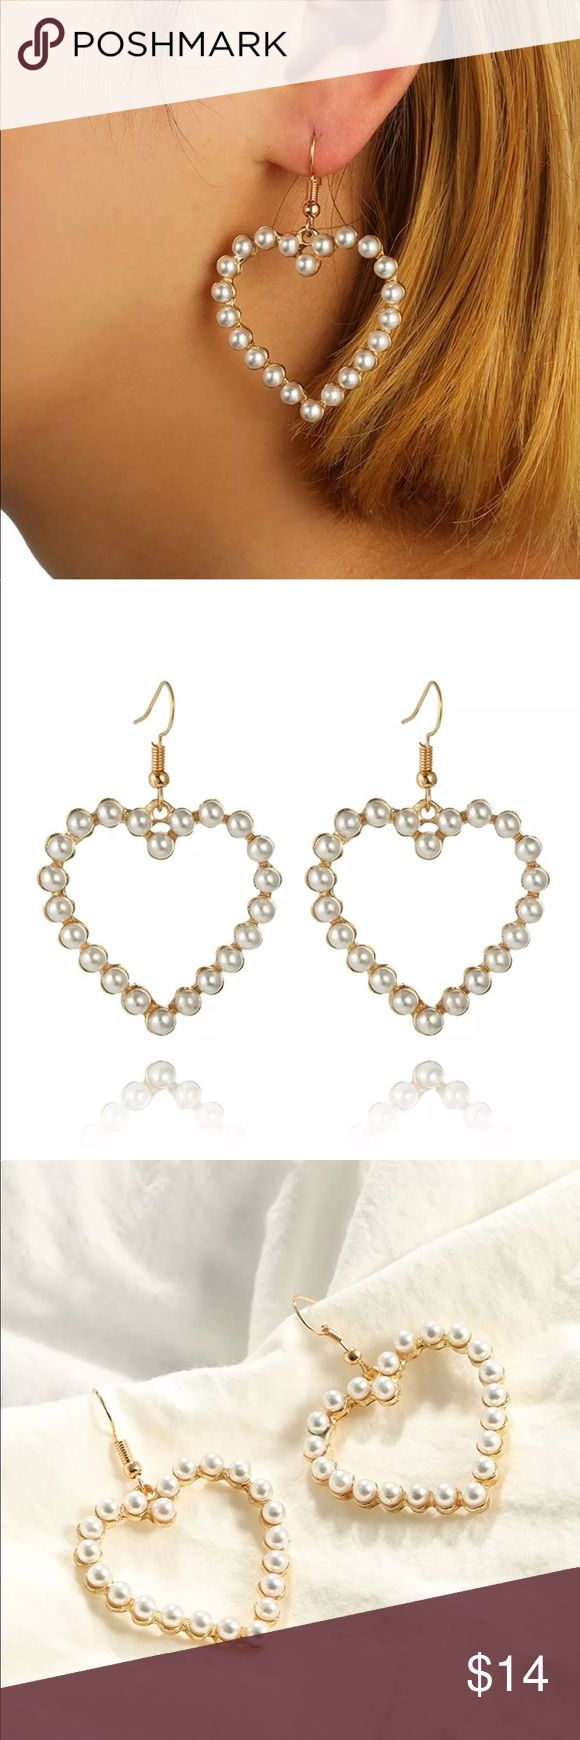 New Item✨ Pearl Heart Earrings ❤️✨ ✨ Fashion Jewelry ✨ Alloy, Gold Plated, Synthetic Pearls  ✨ Very cute & Stylish    Brand New✨ PRICE IS FIRM If you want to save please look into bundling  In Stock No Trades NO HOLDS  Will ship within 24- 48 hours Monday-Friday (Friday orders will ship on the following business day)   Please -NO- Offers on items priced $10 and under AND ON SALE ITEMS‼️  Serious Inquiries Only❣️  Bundle one or more items from my boutique to only pay one shipp